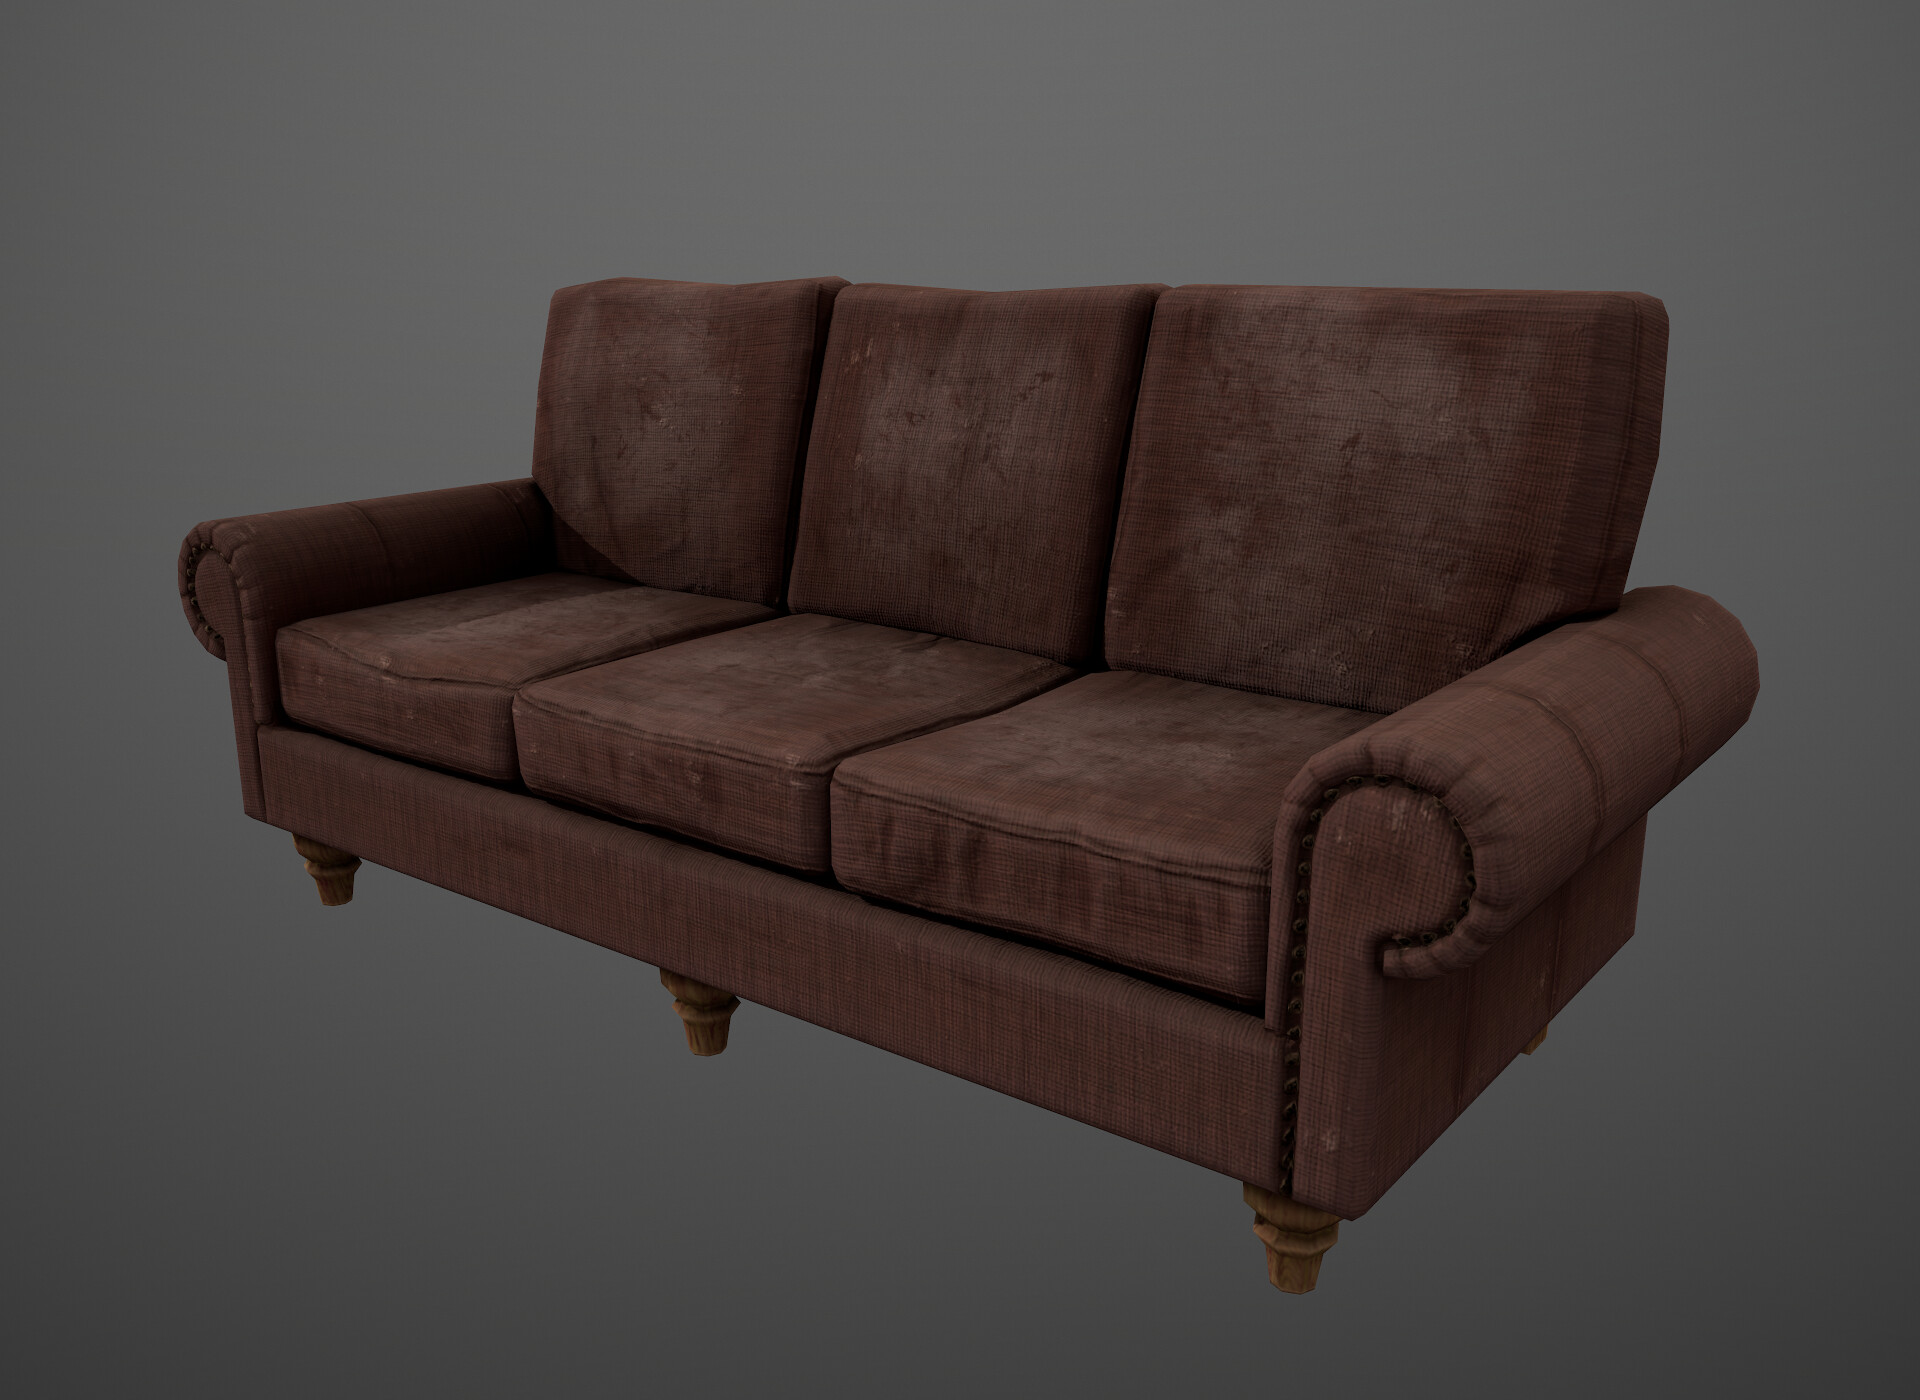 Sofa (with slightly altered texture) rendered in marmoset